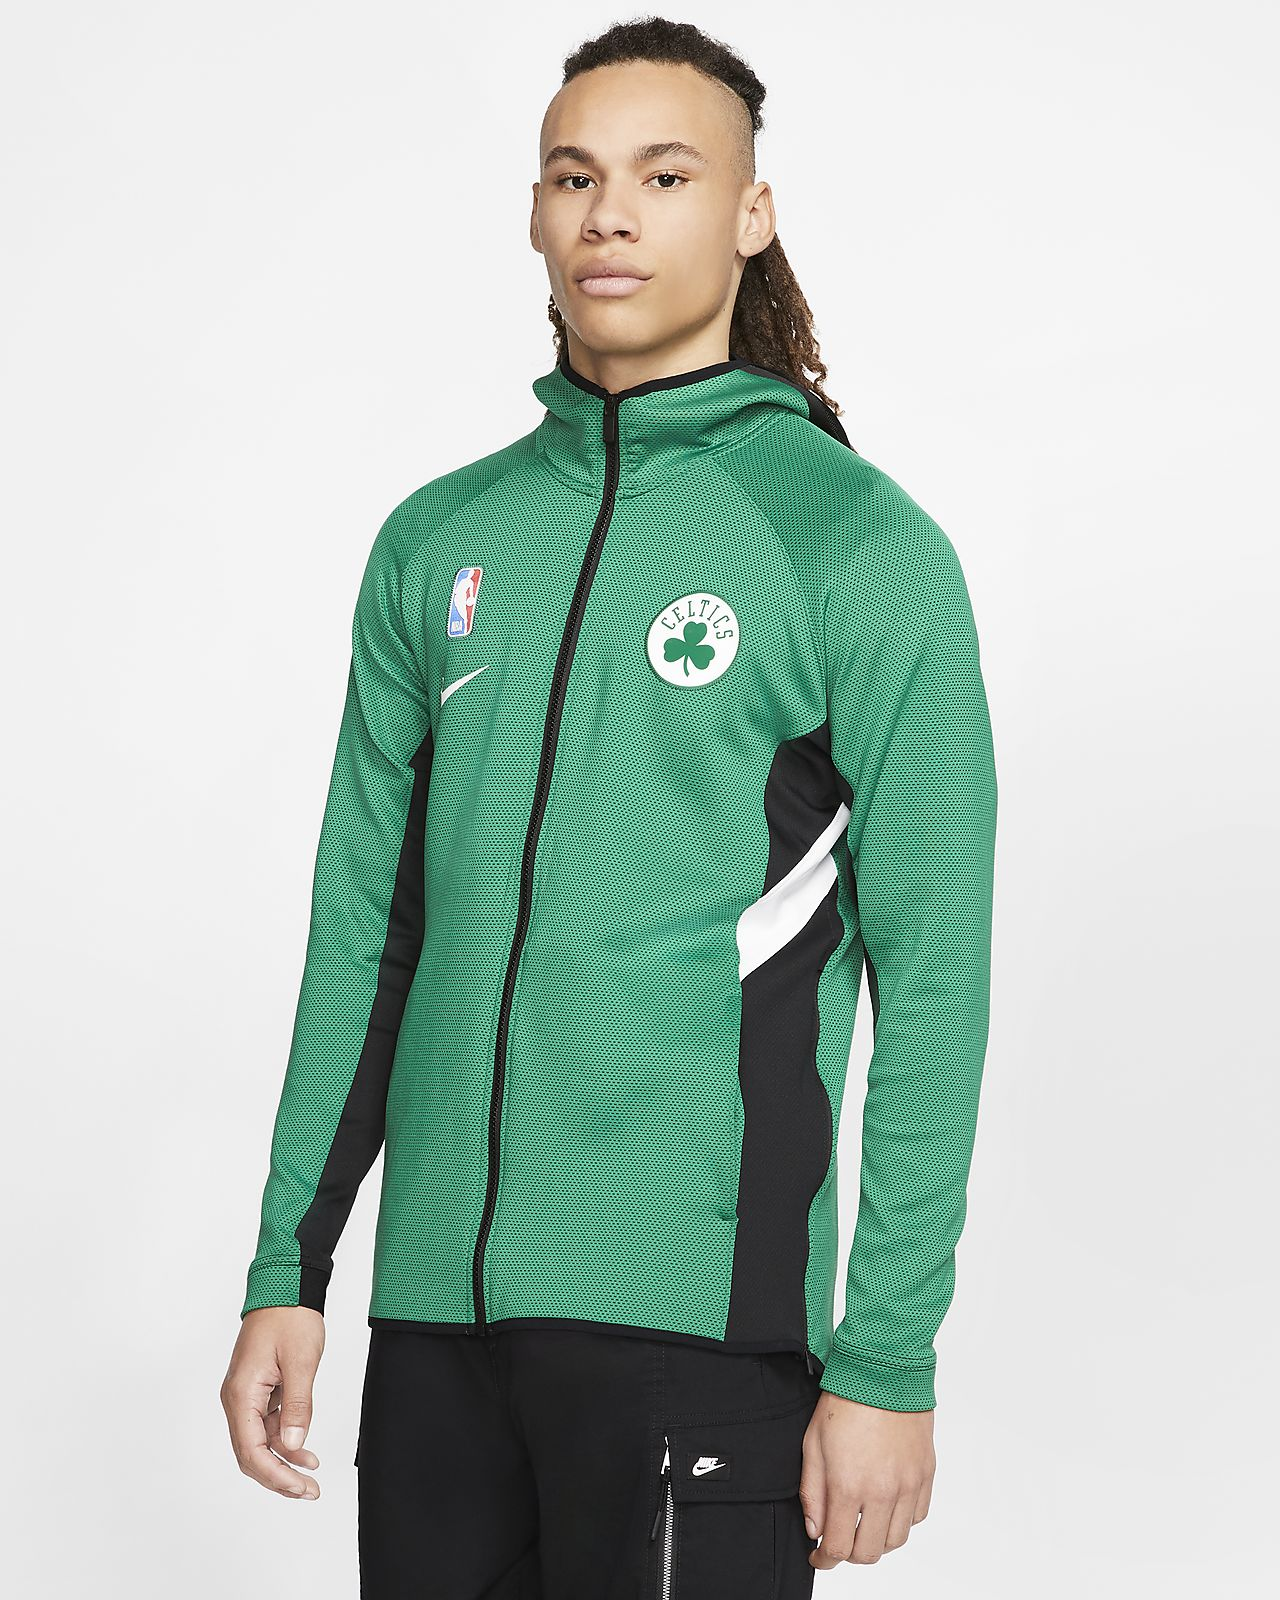 Boston Celtics Nike Therma Flex Showtime NBA Erkek Kapüşonlu Üst